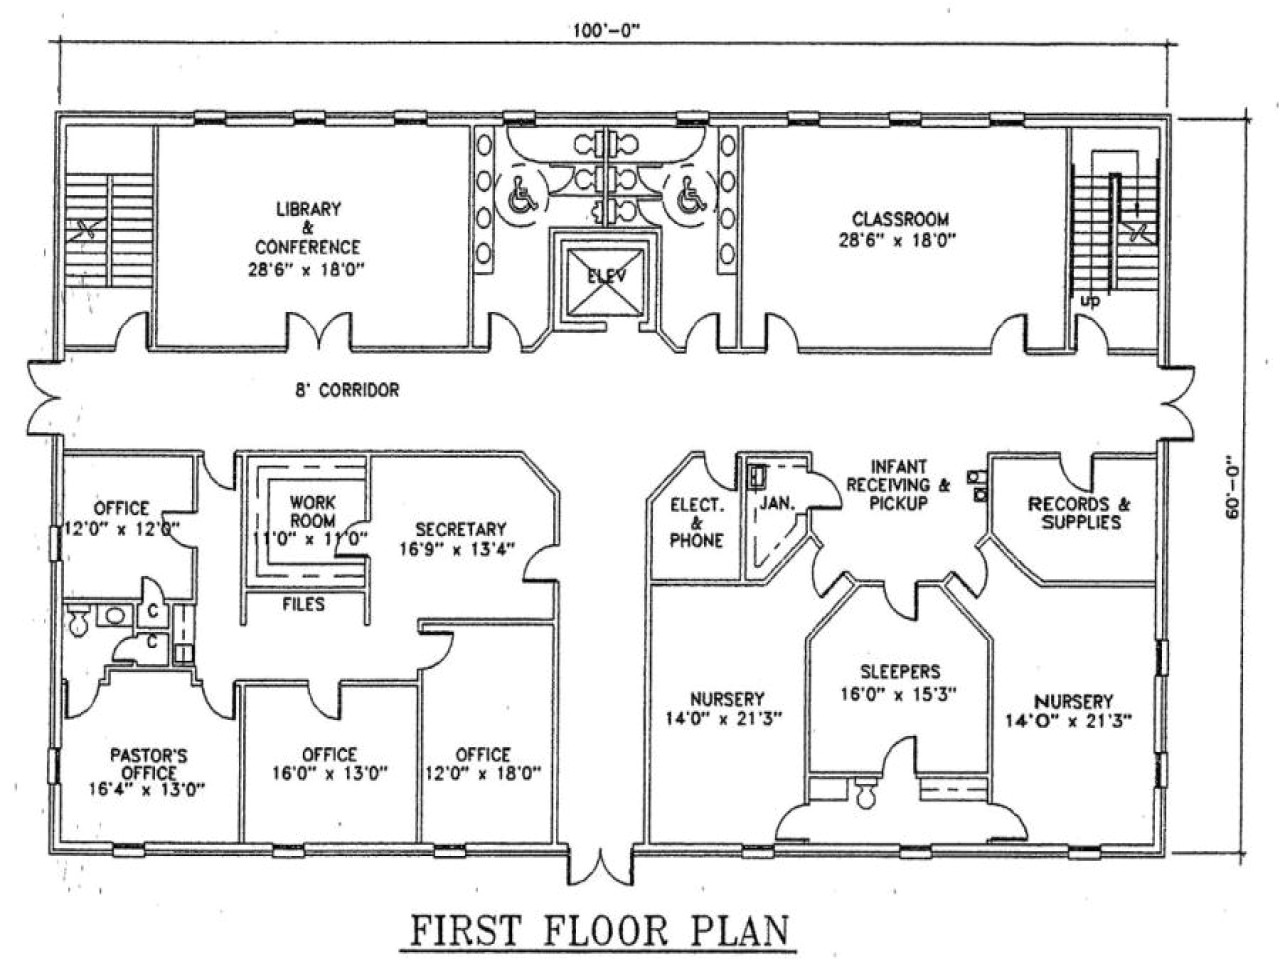 12000 Sq Ft Home Plans 50000 Sq Ft House 12000 Sq Ft House Plans 12000 Sq Ft